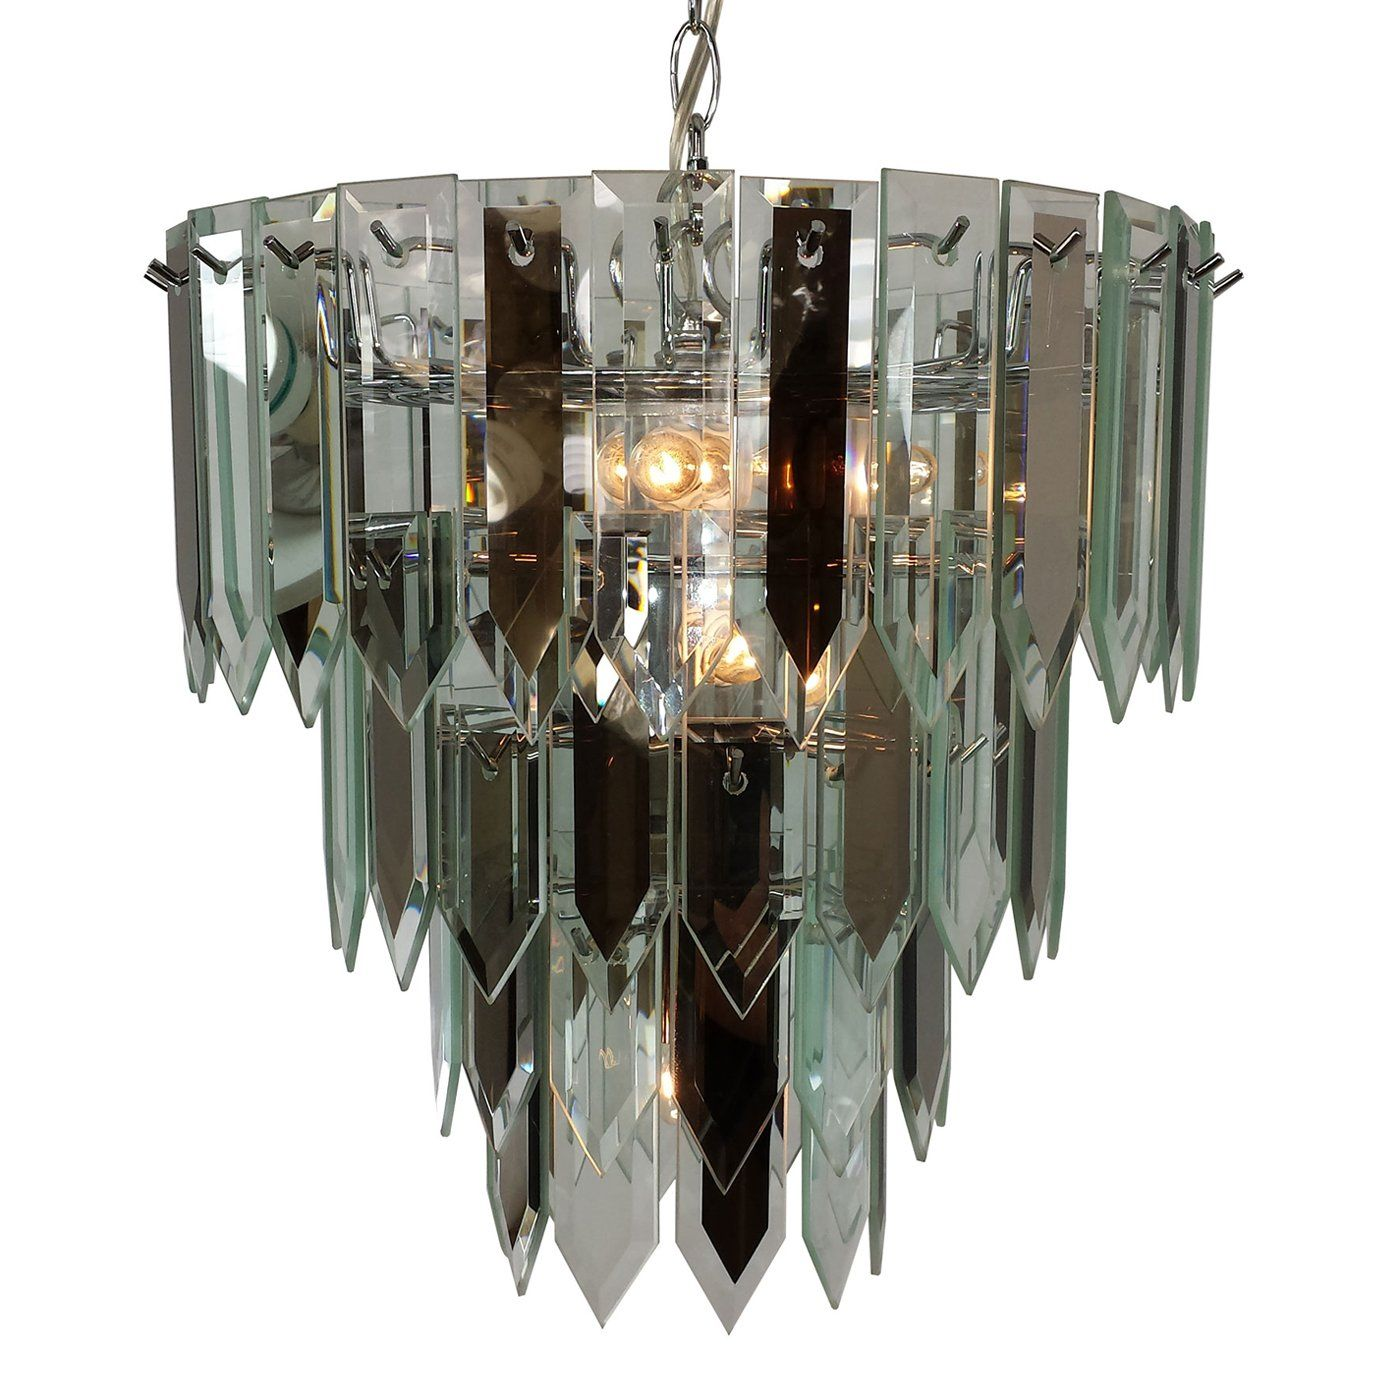 Triarch 12009 rscl 7 light multi tiered chandelier atg stores triarch 12009 rscl 7 light multi tiered chandelier atg stores arubaitofo Gallery